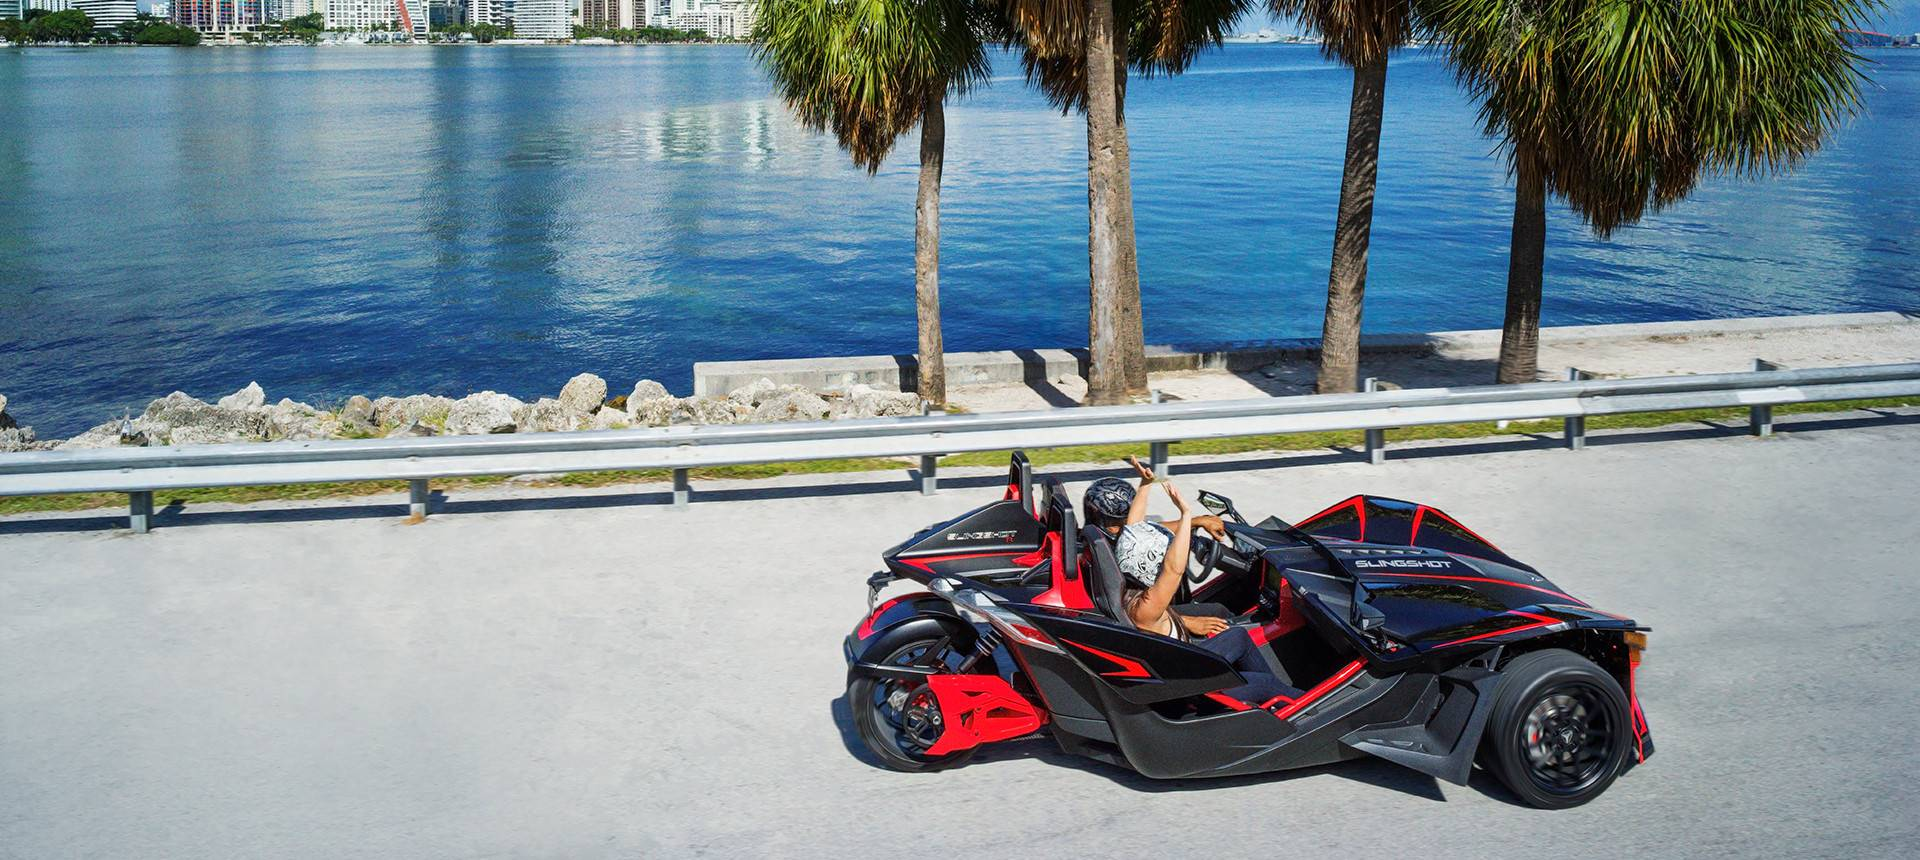 2020 Polaris SLINGSHOT R in Panama City Beach, Florida - Photo 18